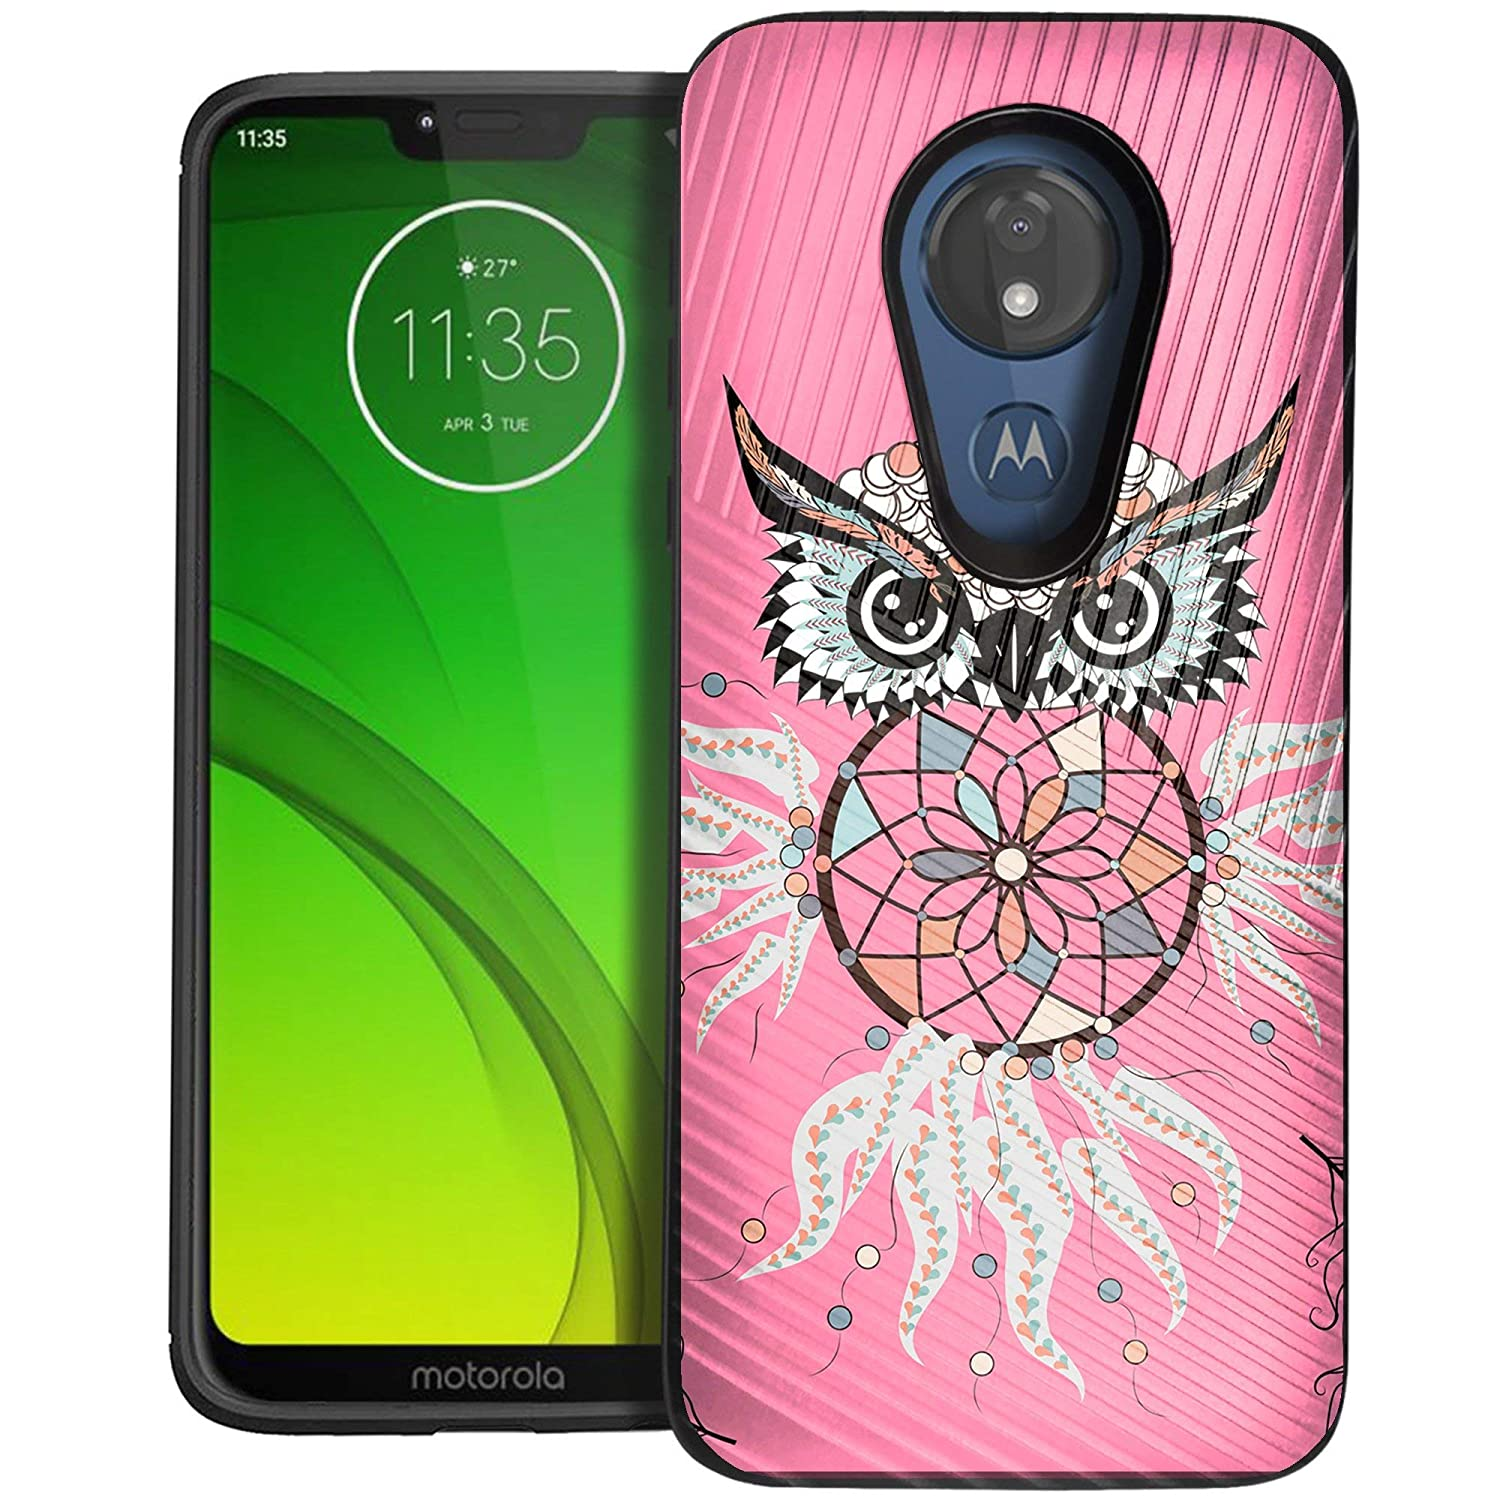 CasesOnDeck Case Compatible with [Motorola Moto G7 Power | Motorola Moto G7  Supra] Moto G Power 7th Gen Case, Dual Layer Hybrid Combat Shock Shell